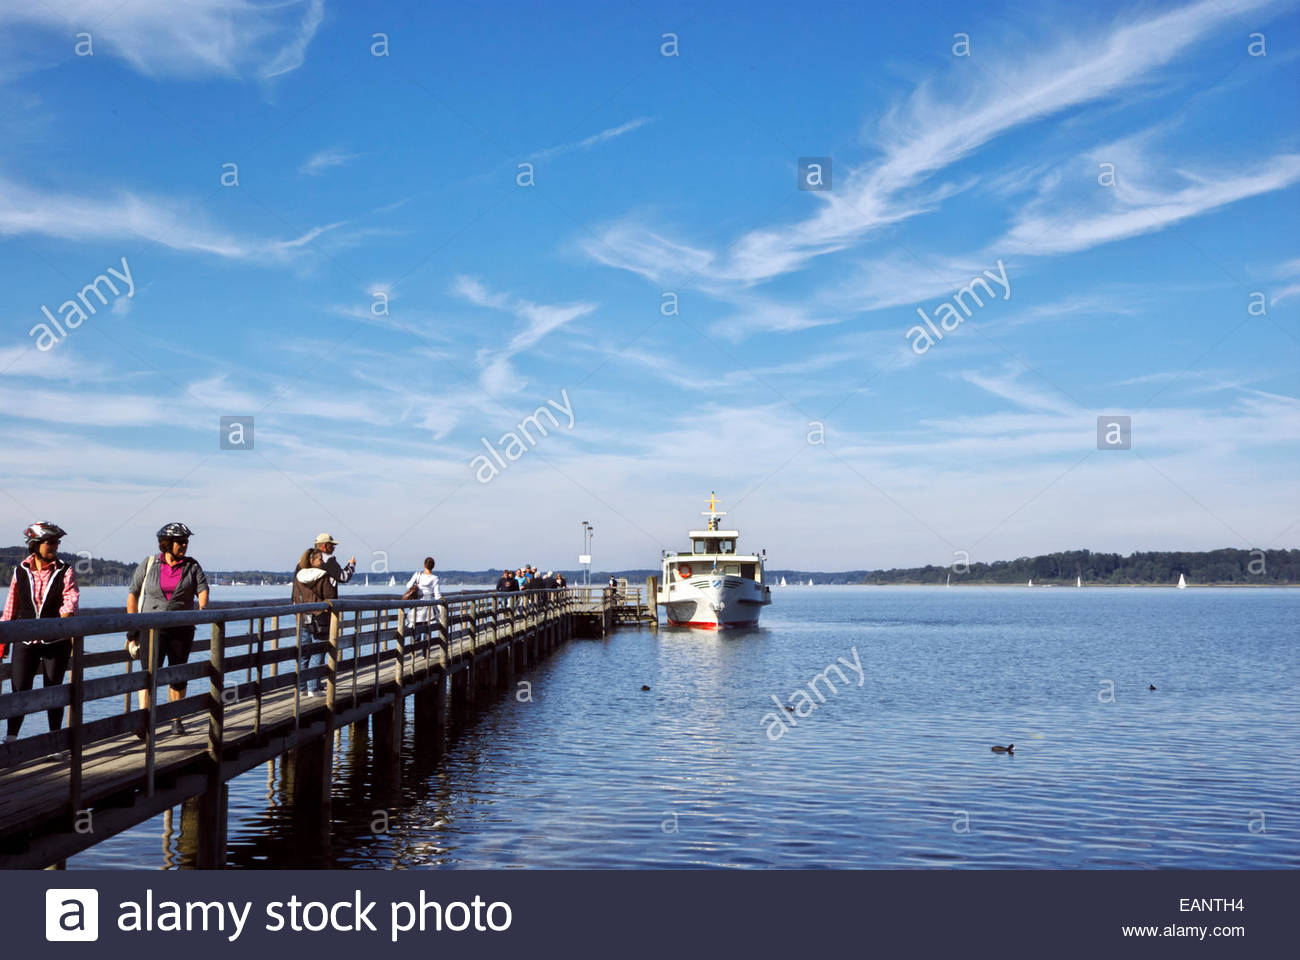 Tourists disembark as others queue up to board an excursion boat for a trip to Herreninsel, an island in the Chiemsee. - Stock Image